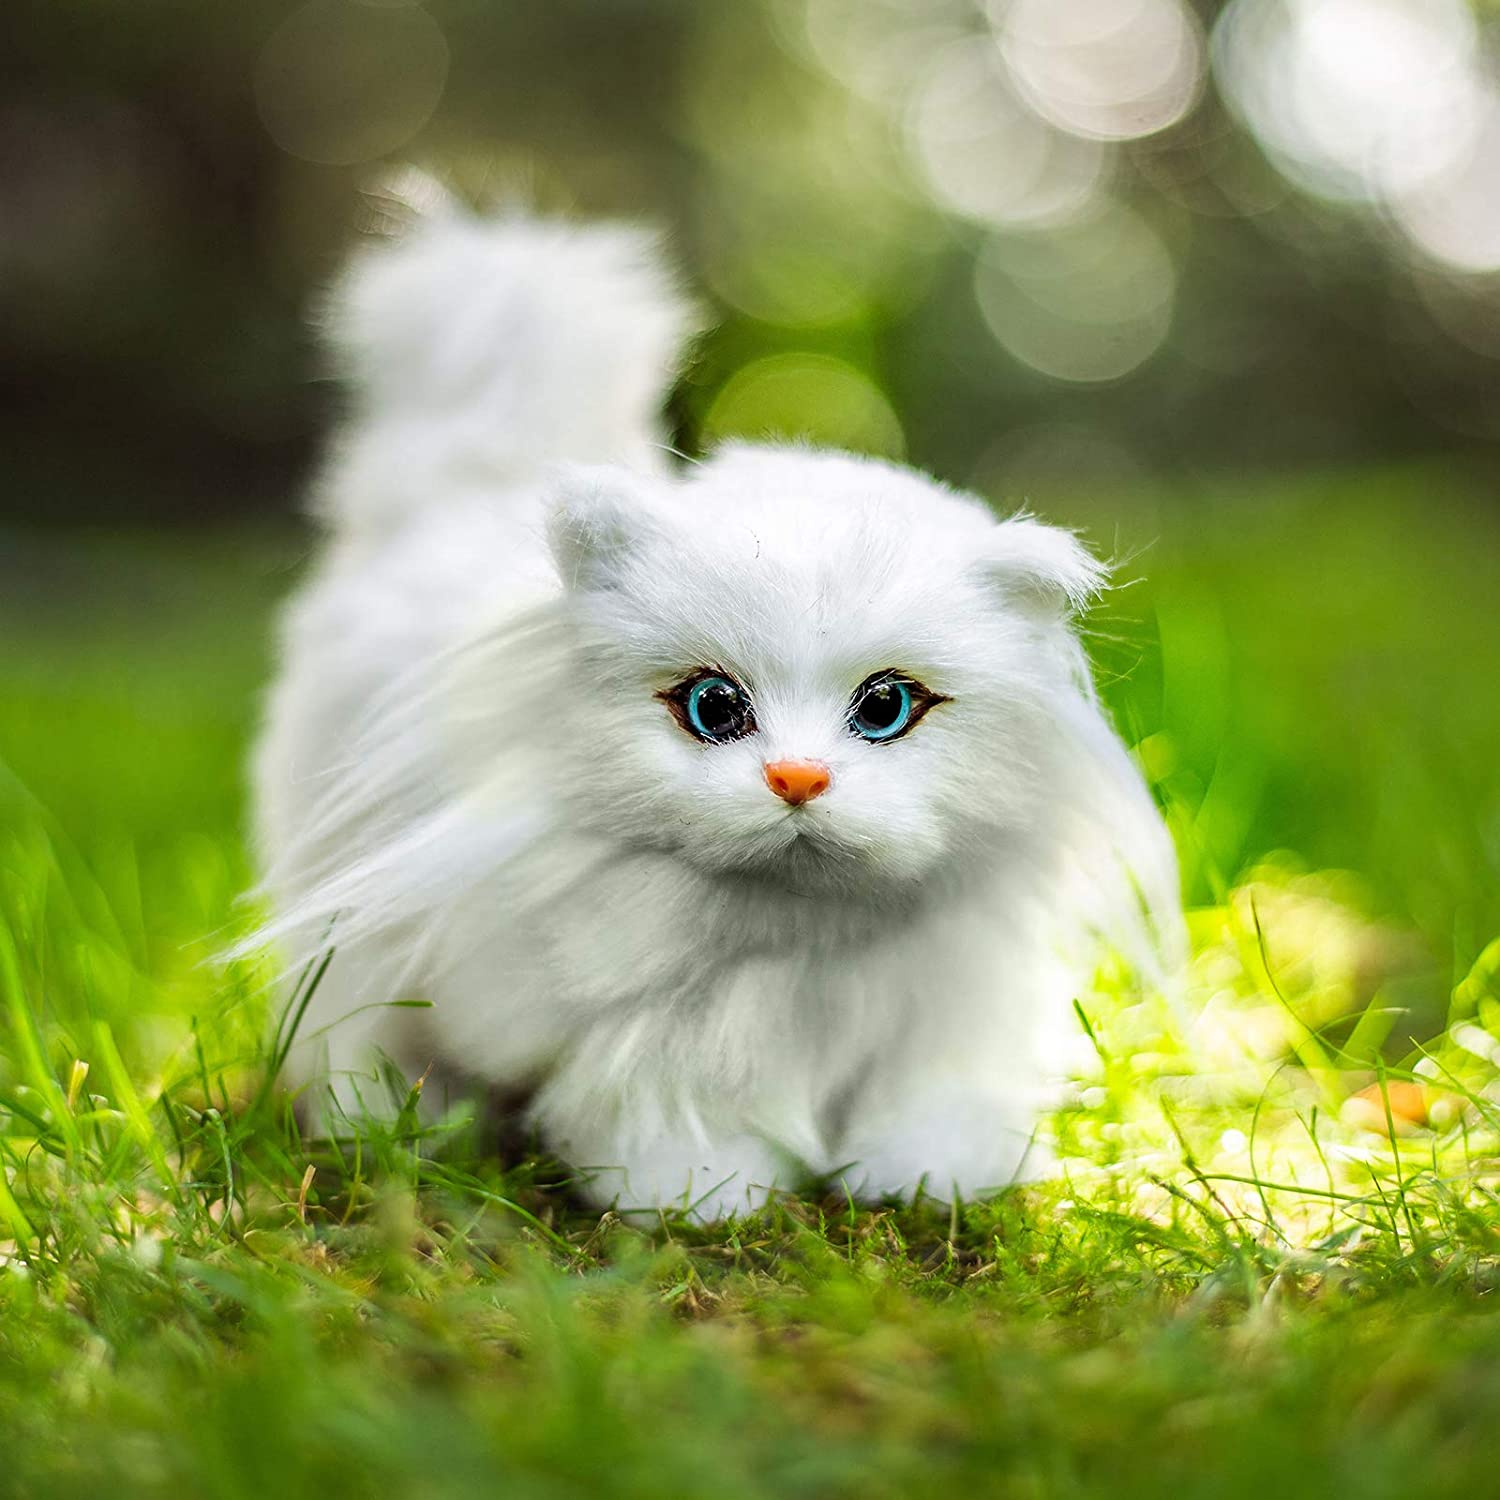 Kitty Cat Picture photo 11